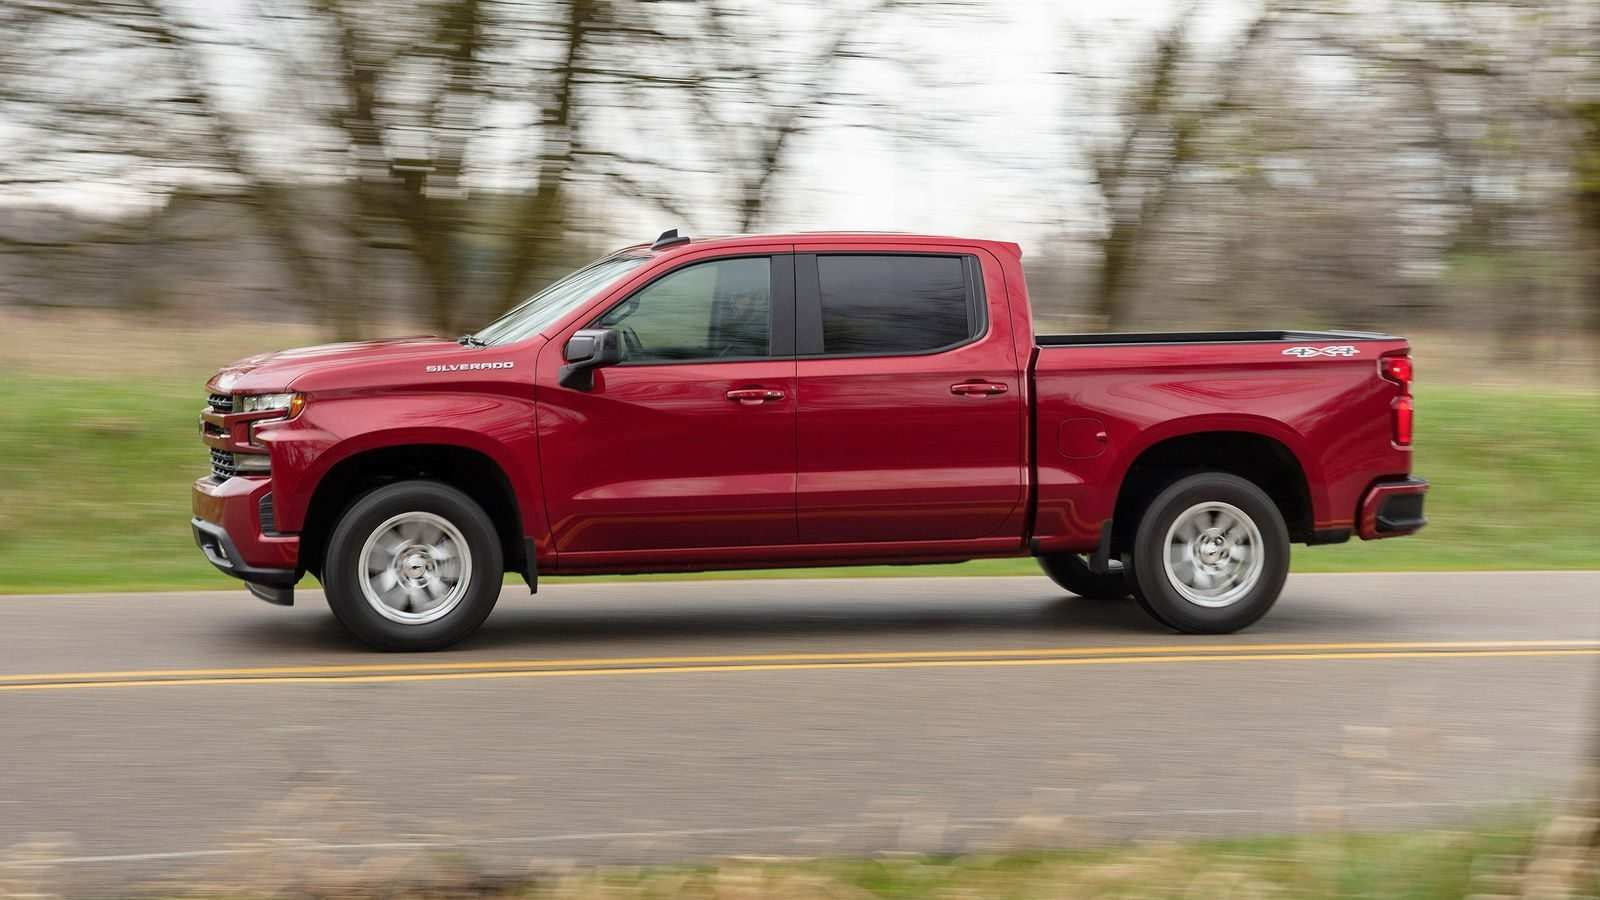 44 Great 2019 Gmc 4 Cylinder Overview by 2019 Gmc 4 Cylinder